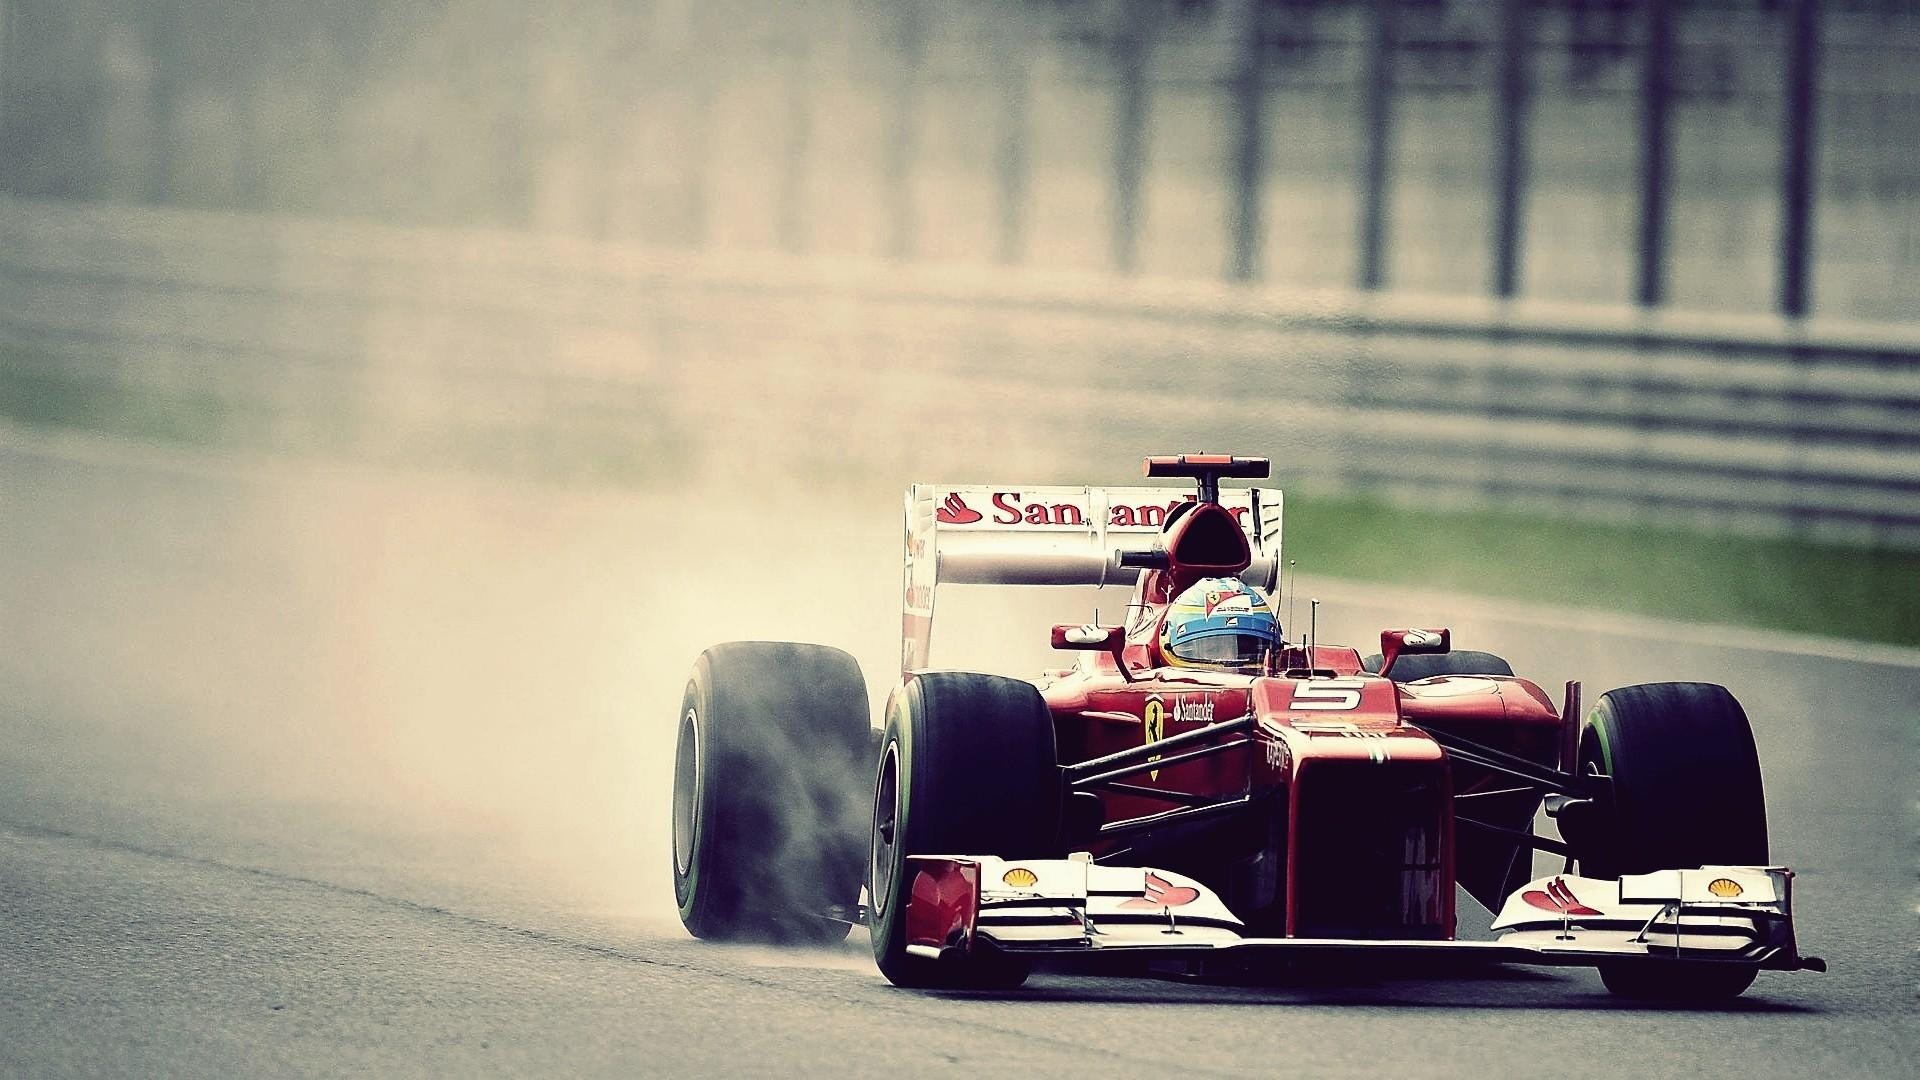 F1 New Best Wallpapers 2015 All Hd Wallpapers